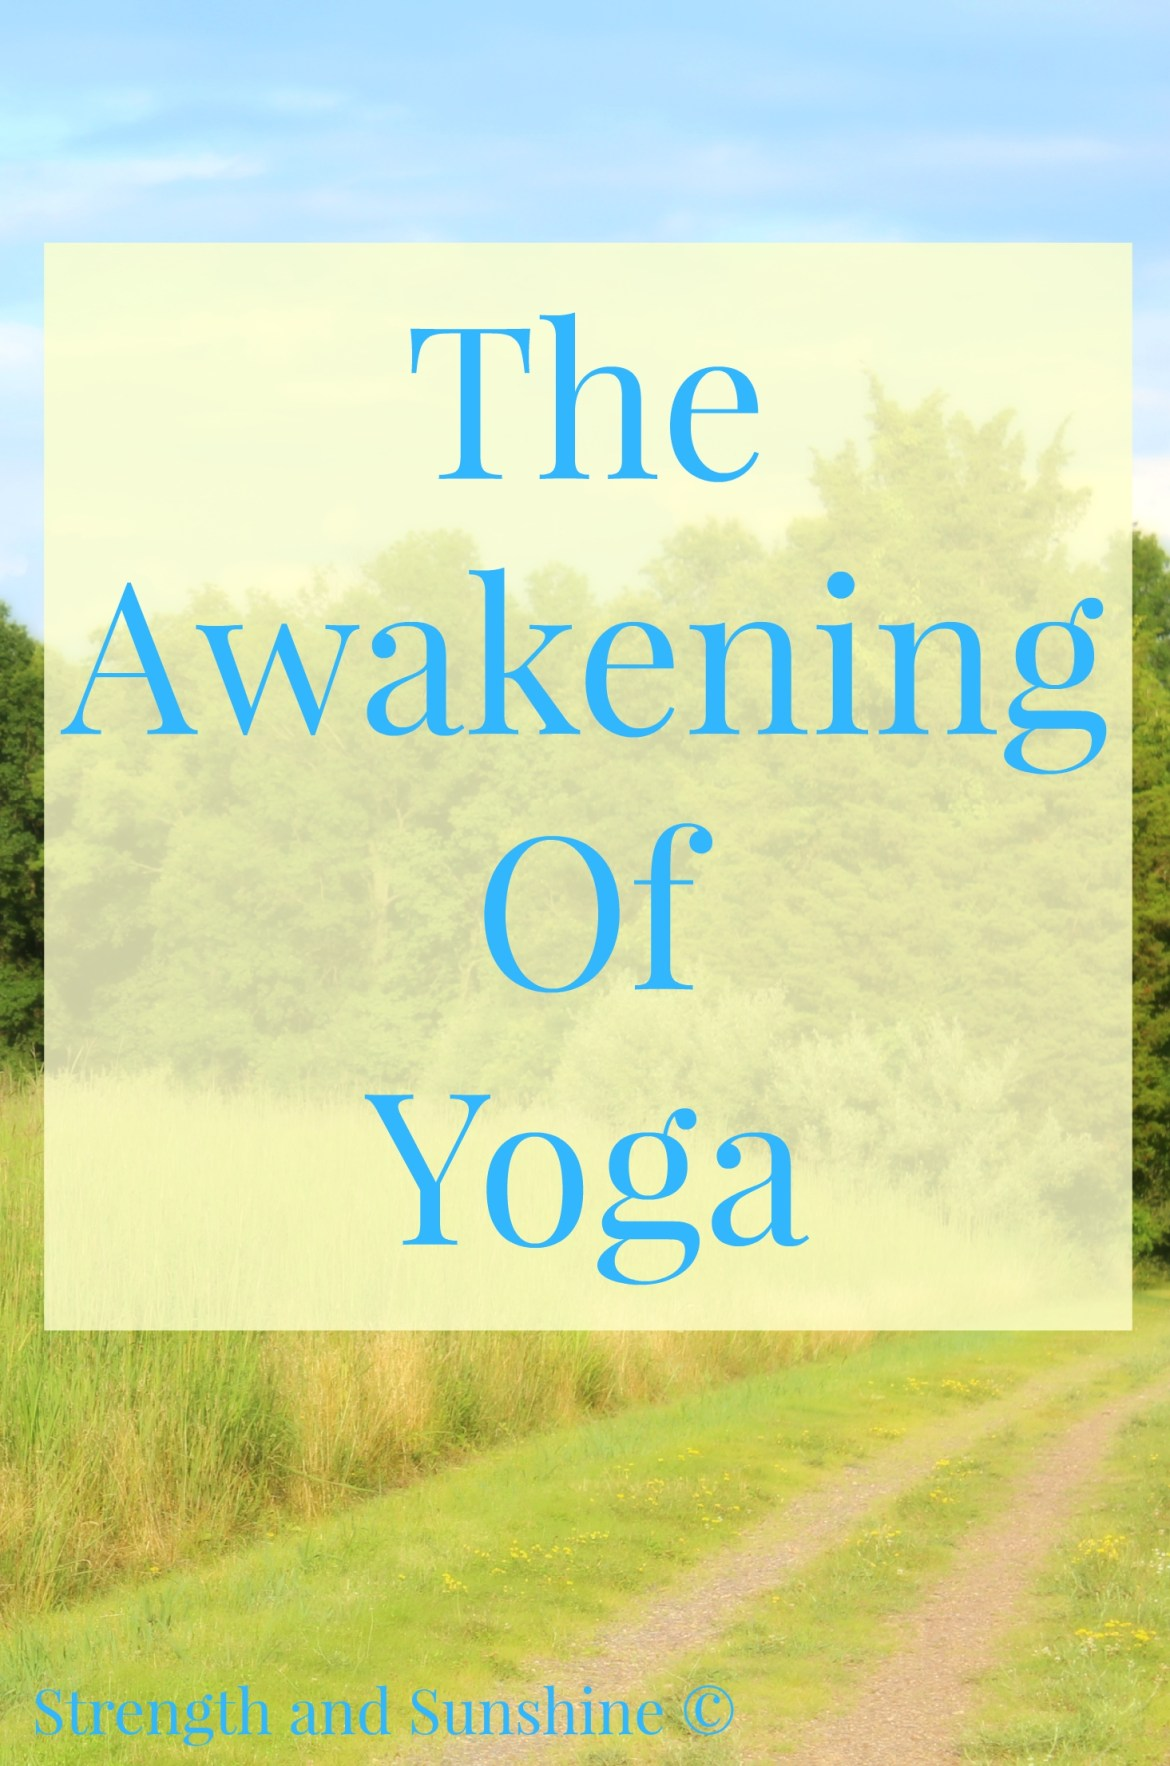 The Awawkening of Yoga from Strength & Sunshine [Weekly Round-Up at High-Heeled Love]